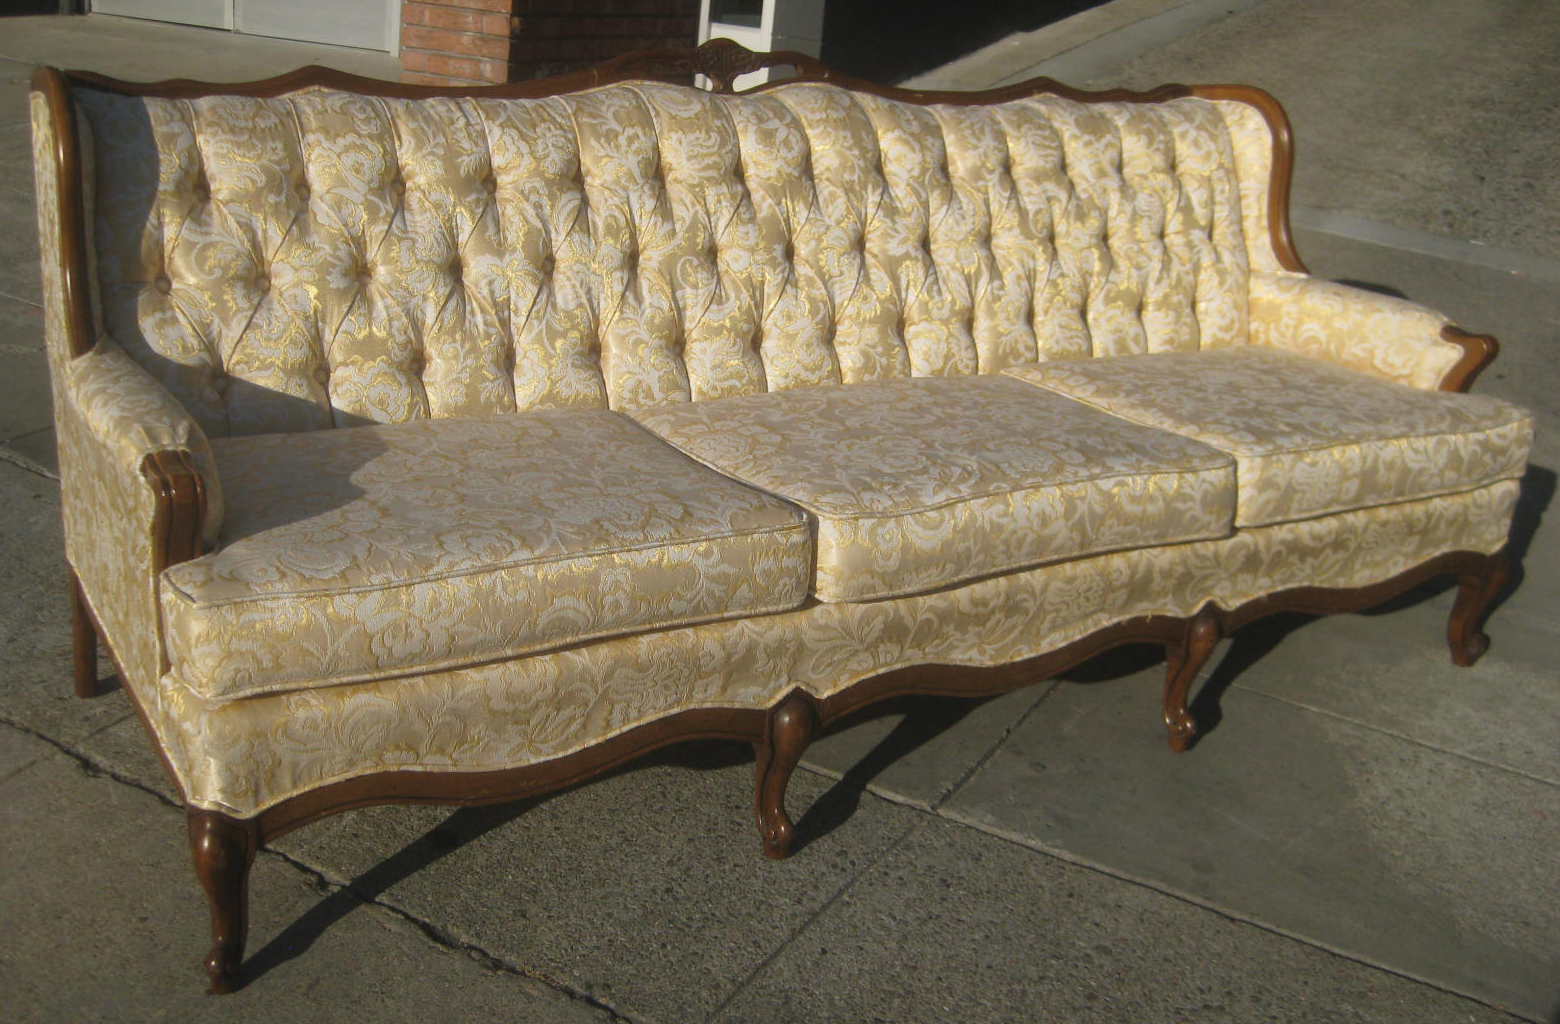 SOLD - French Provincial Sofa - $200 - UHURU FURNITURE & COLLECTIBLES: SOLD - French Provincial Sofa - $200